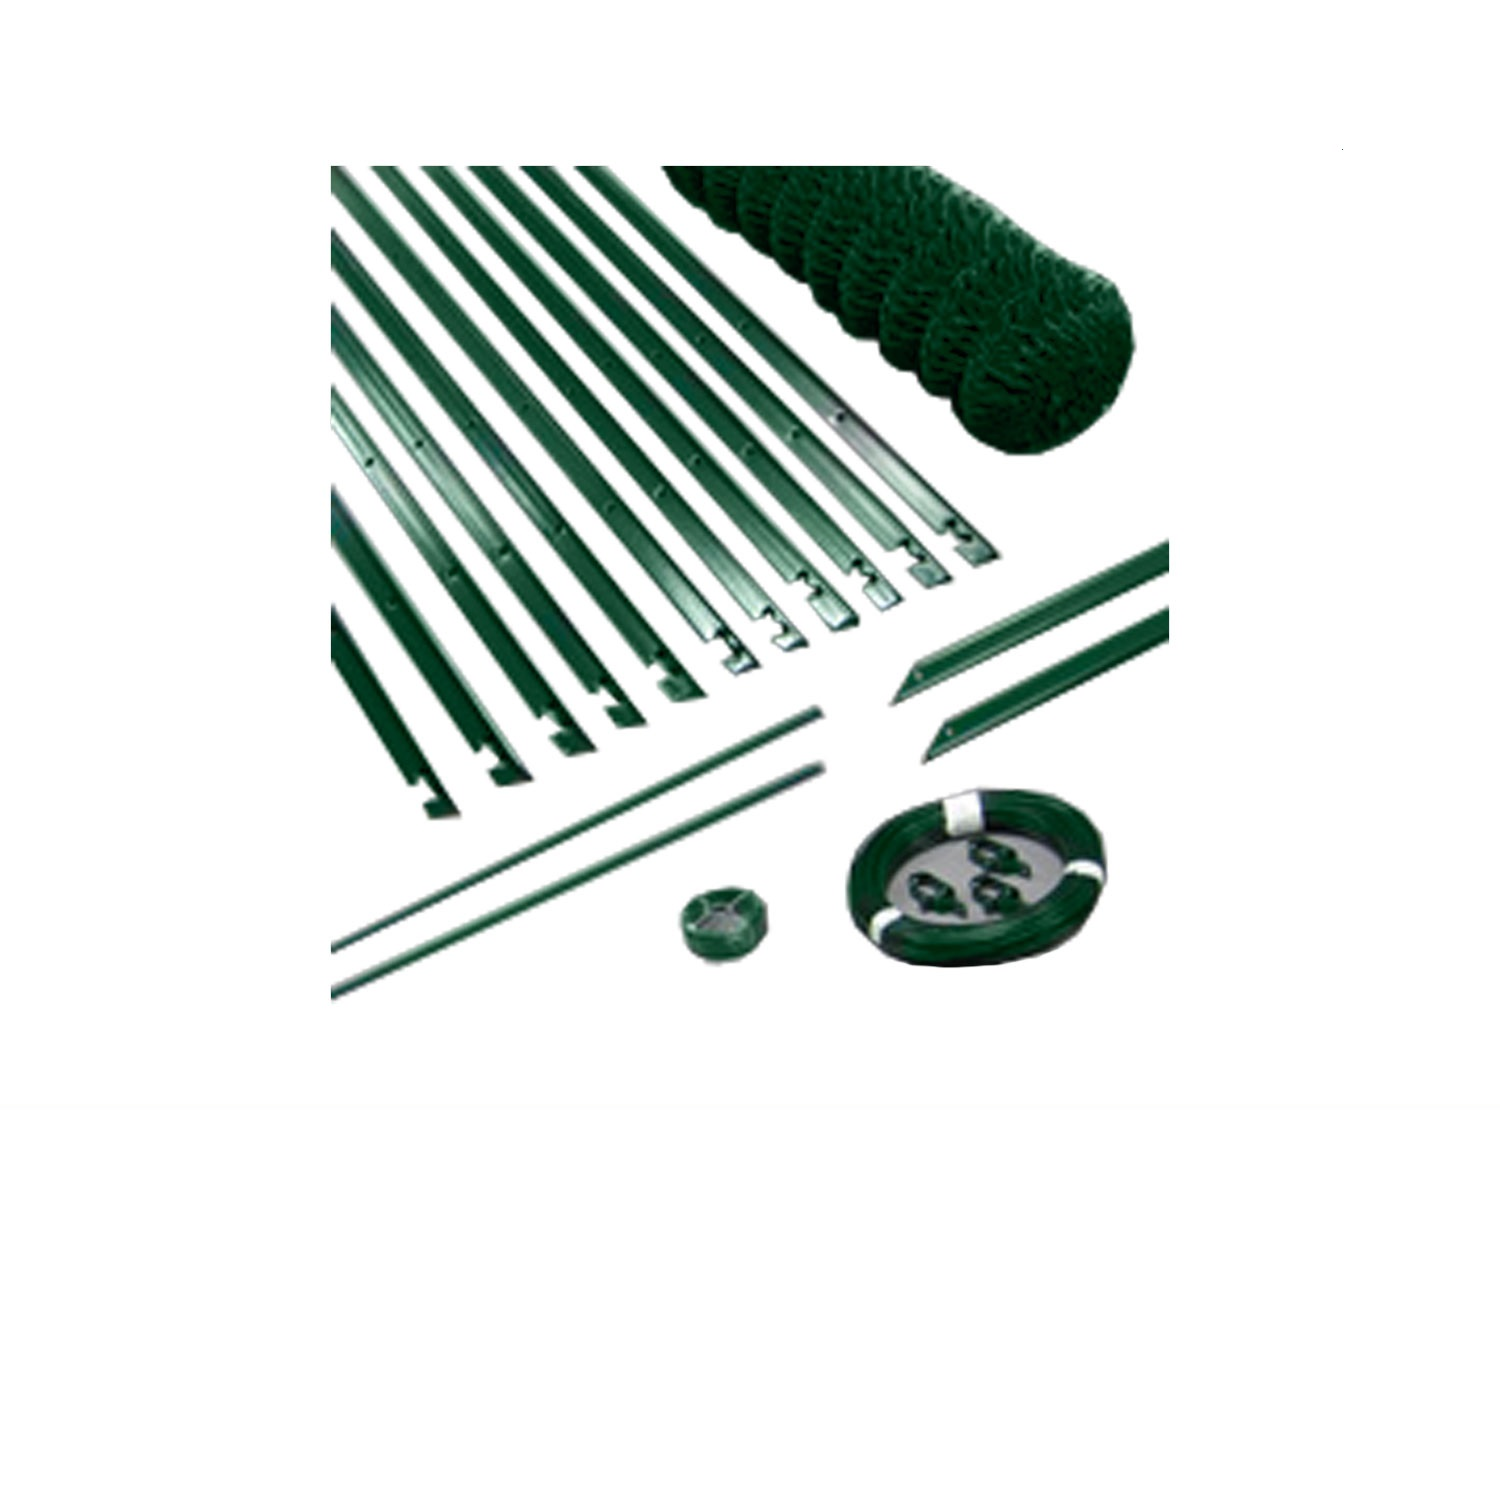 Kit grillage simple torsion 50 x 50 mm - Ø 2,4 / 2,7 / 3,1 mm - Lg. 25 m Vert